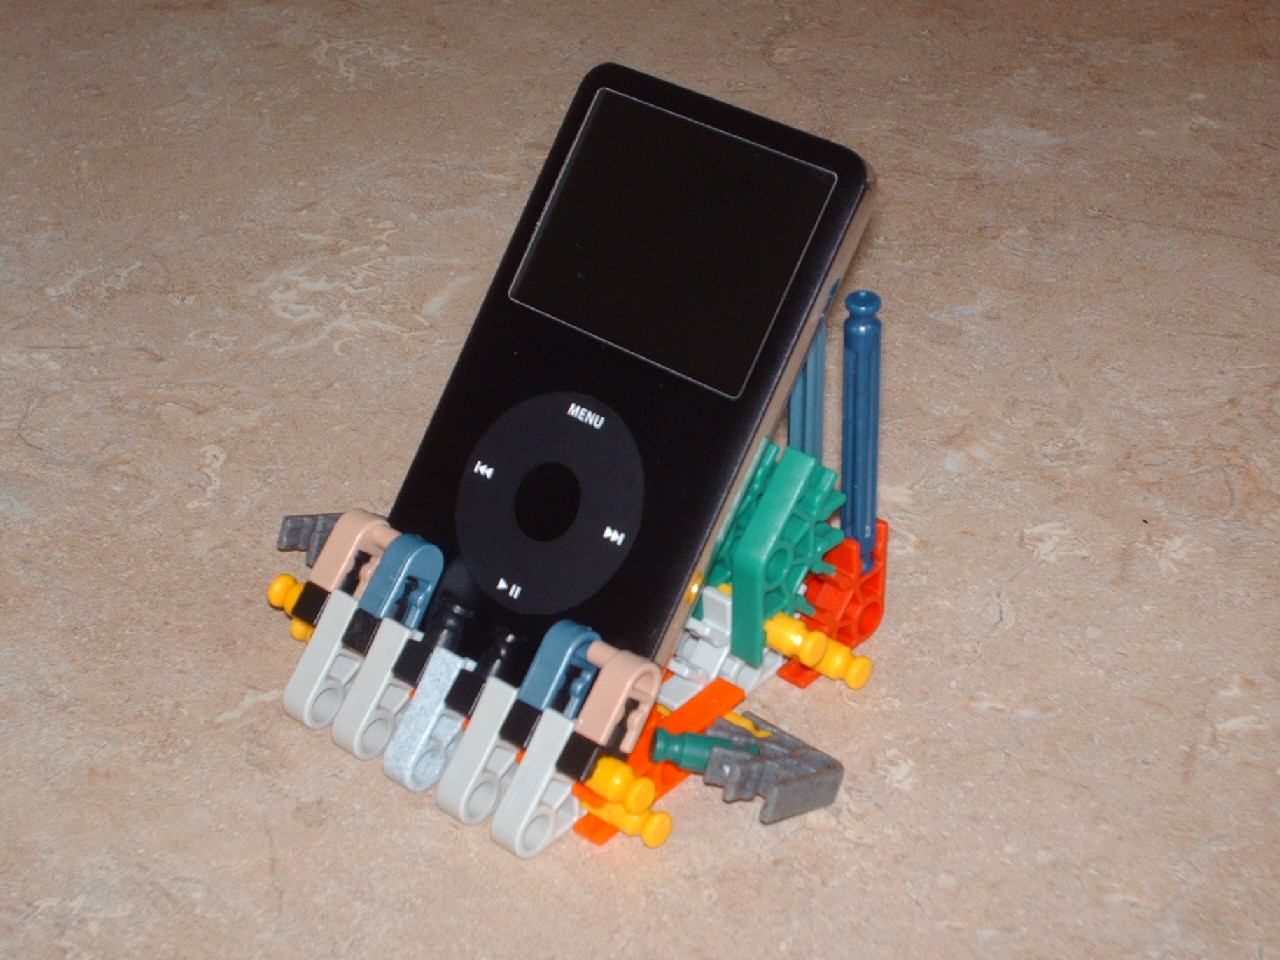 Picture of Knex Universal Dock.